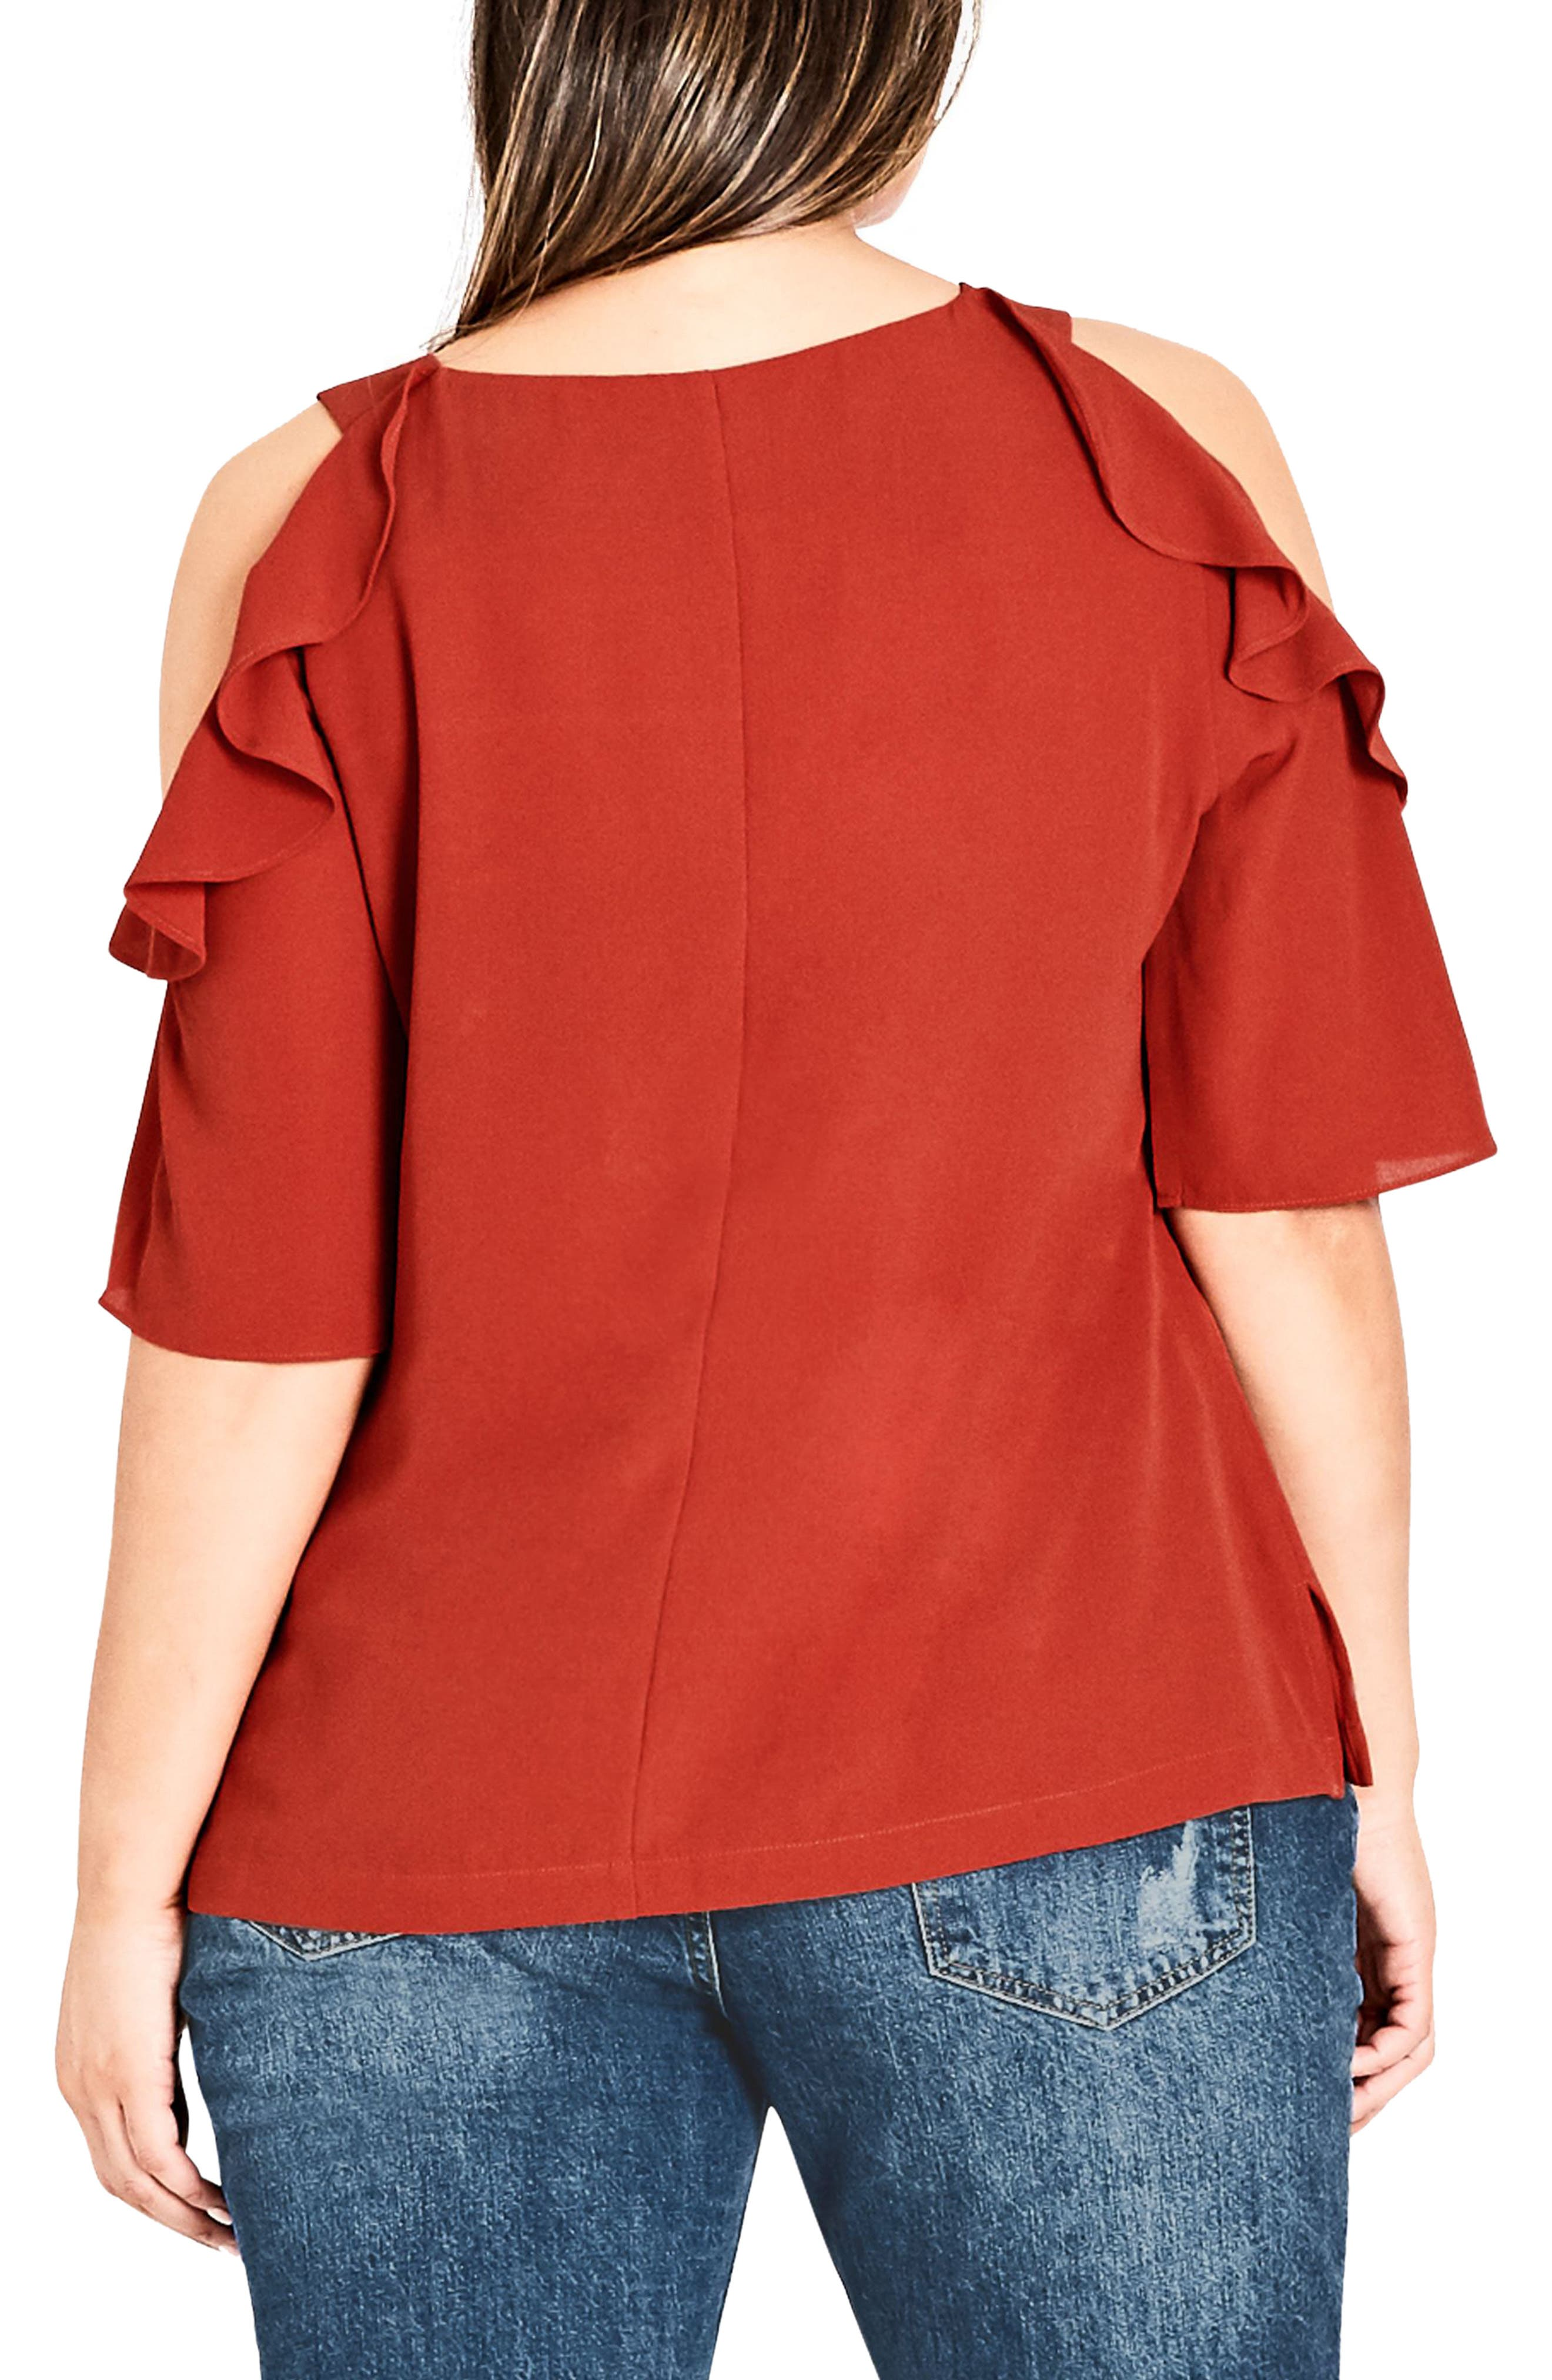 Alternate Image 2  - City Chic Wild Sleeve Cold Shoulder Top (Plus Size)